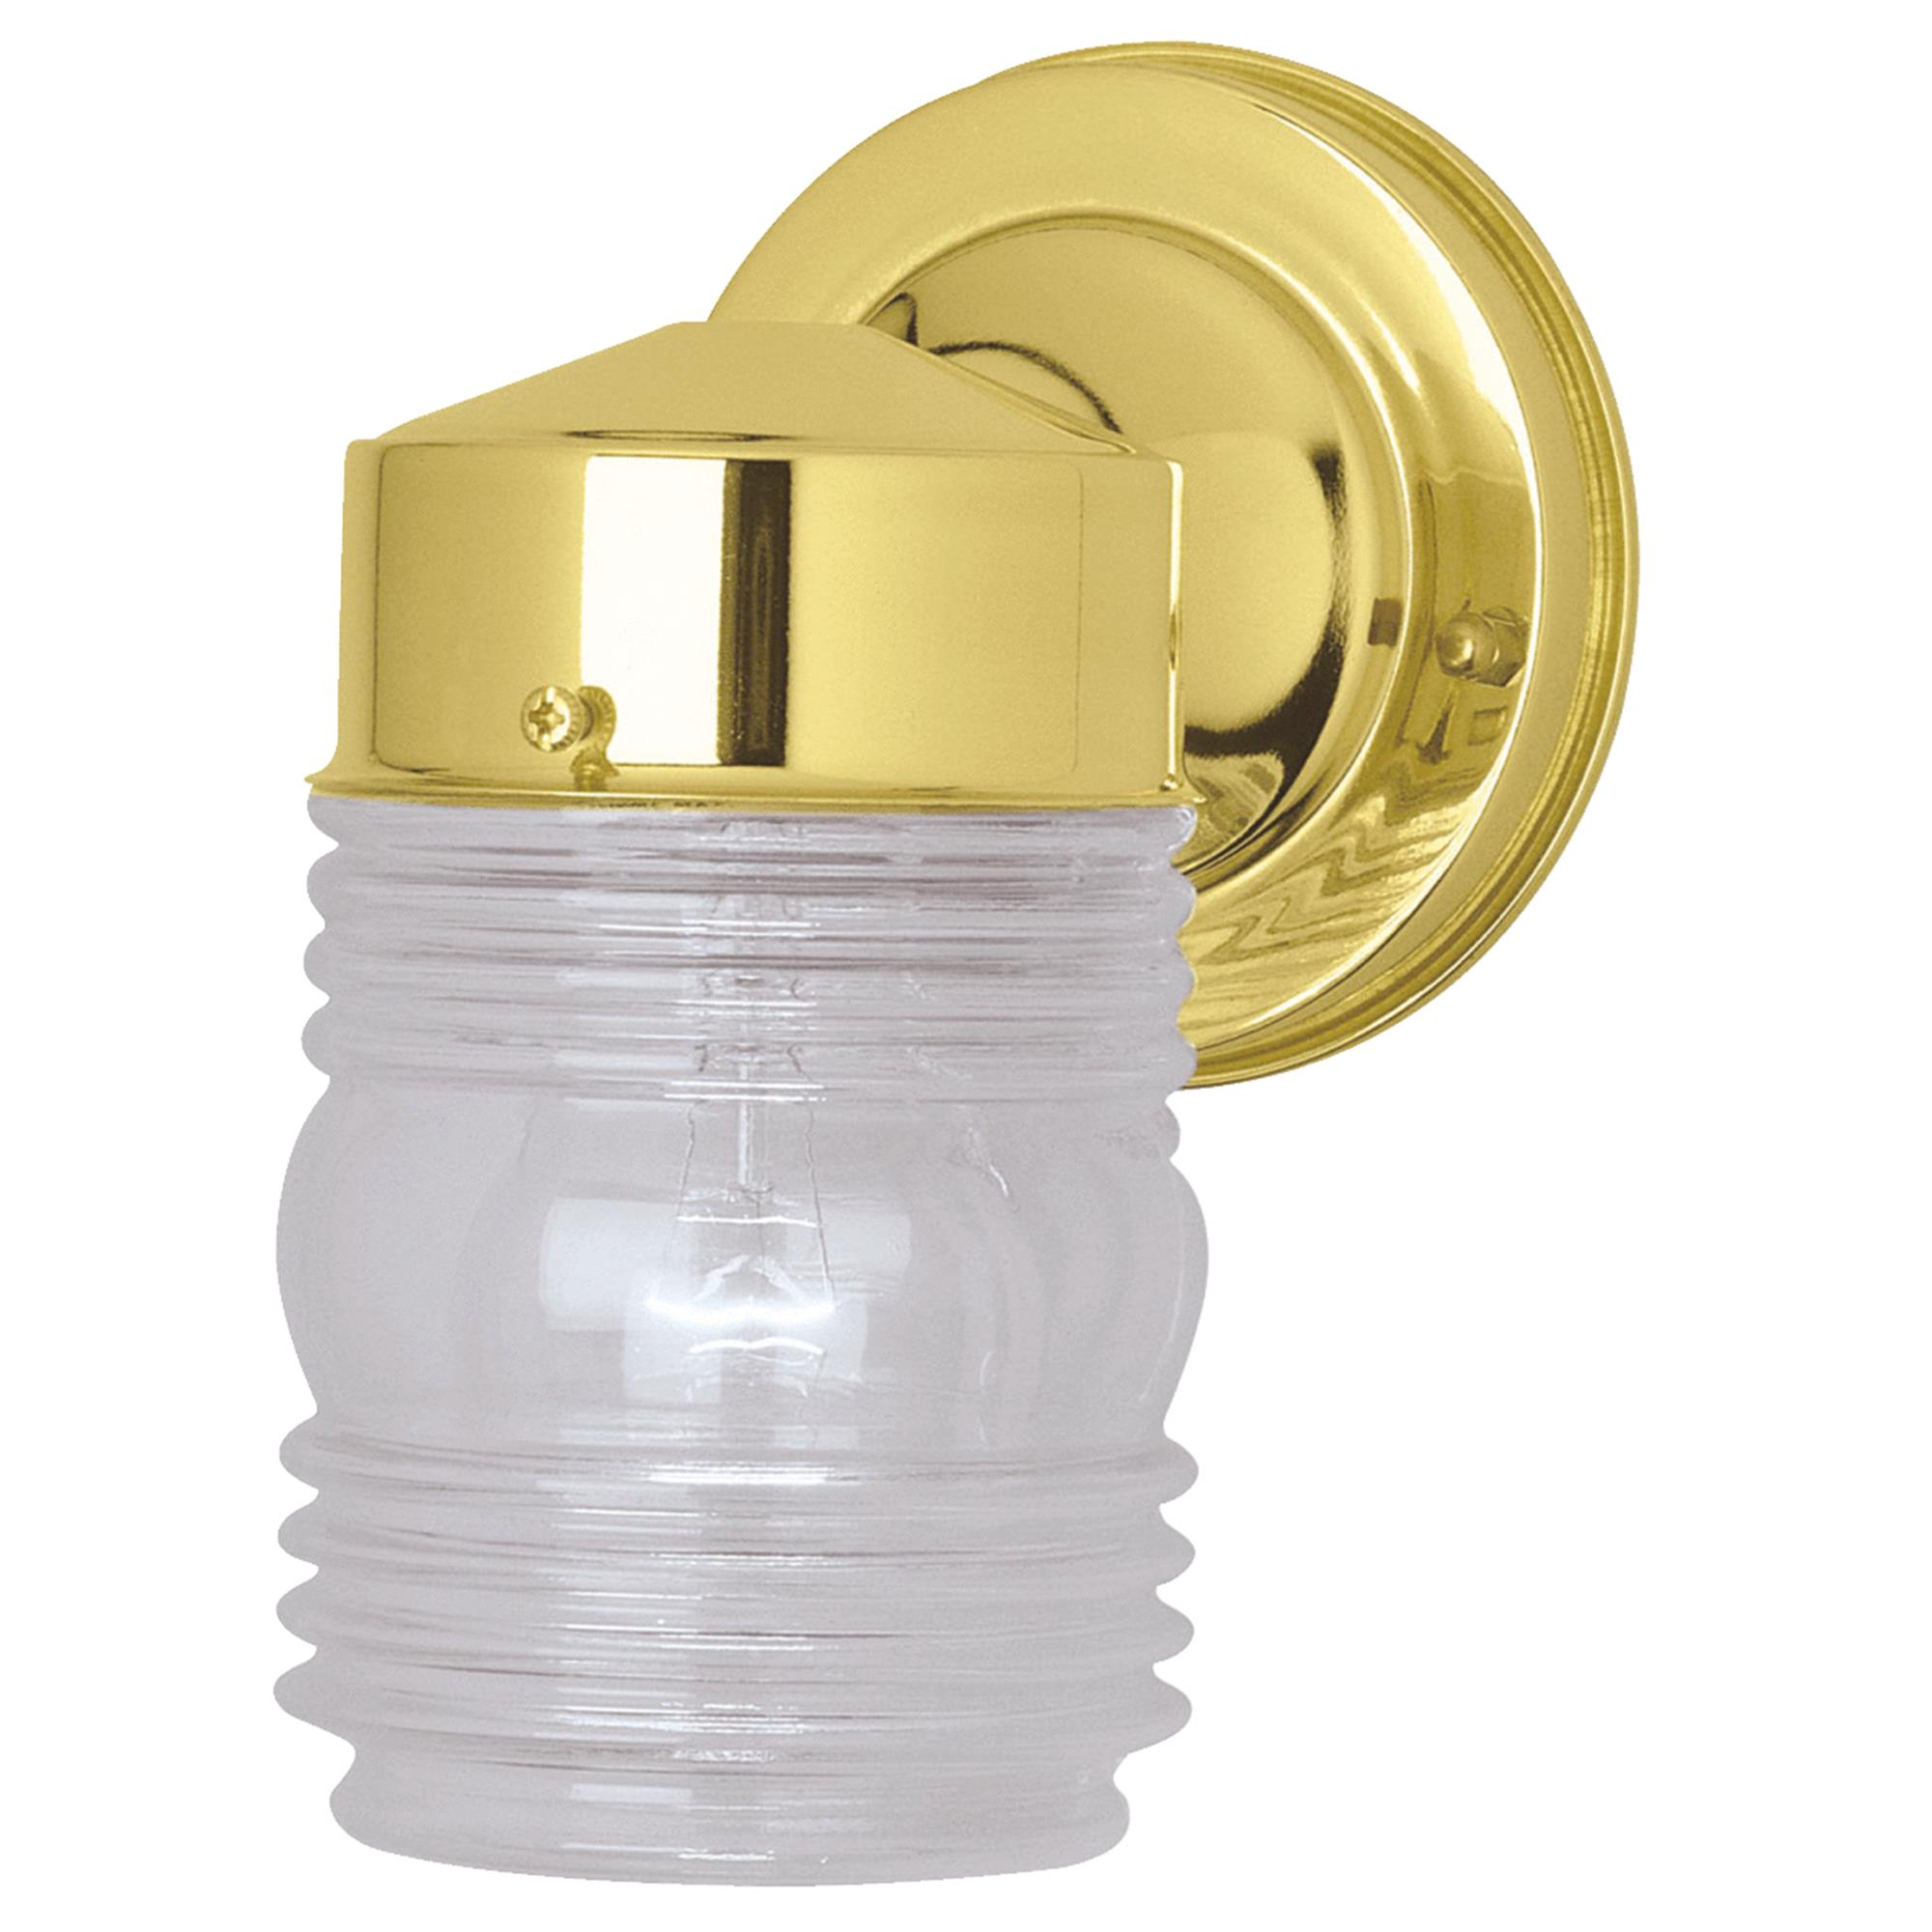 Home Impressions Incandescent Jelly Jar Outdoor Wall Light Fixture